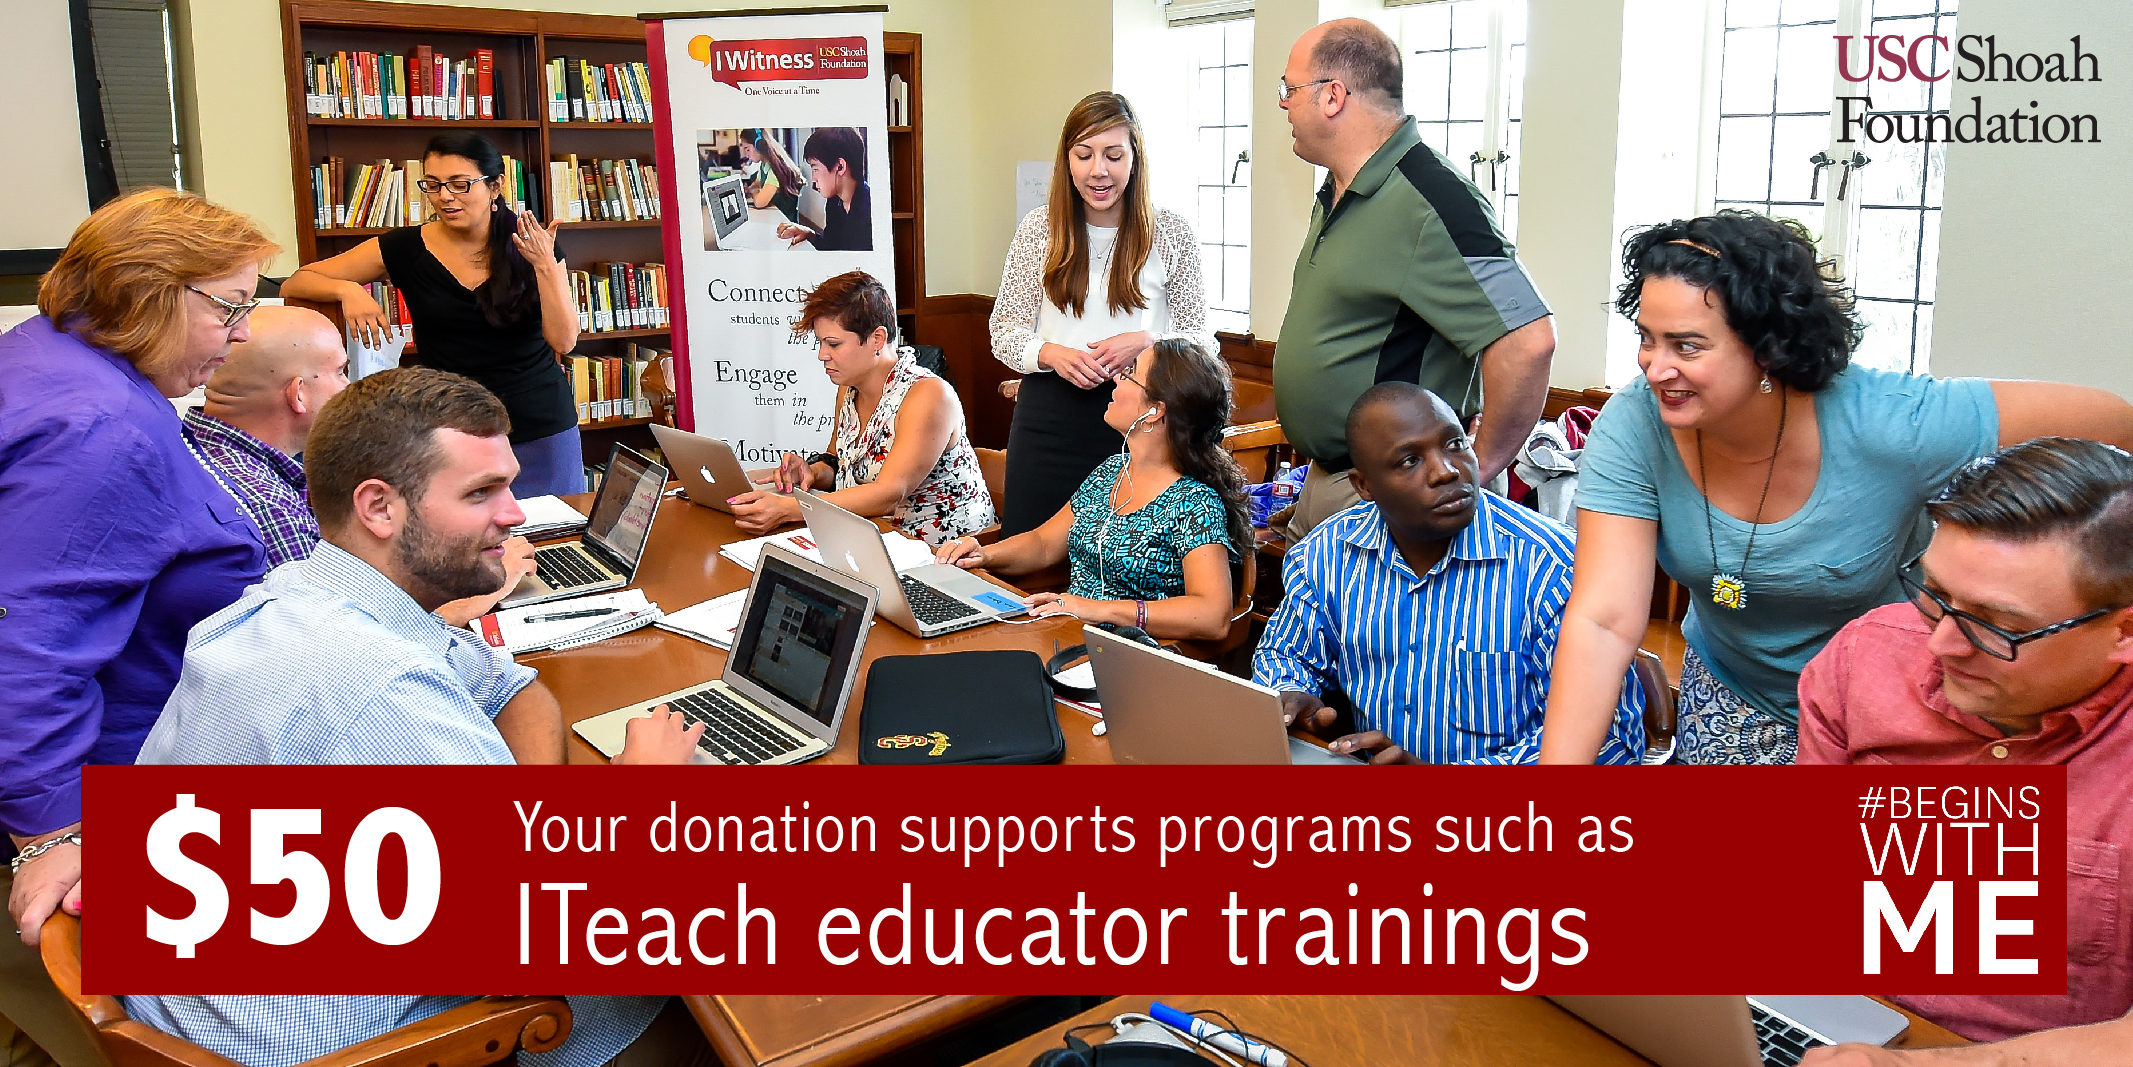 Your $50 donation can help fund our ITeach Program